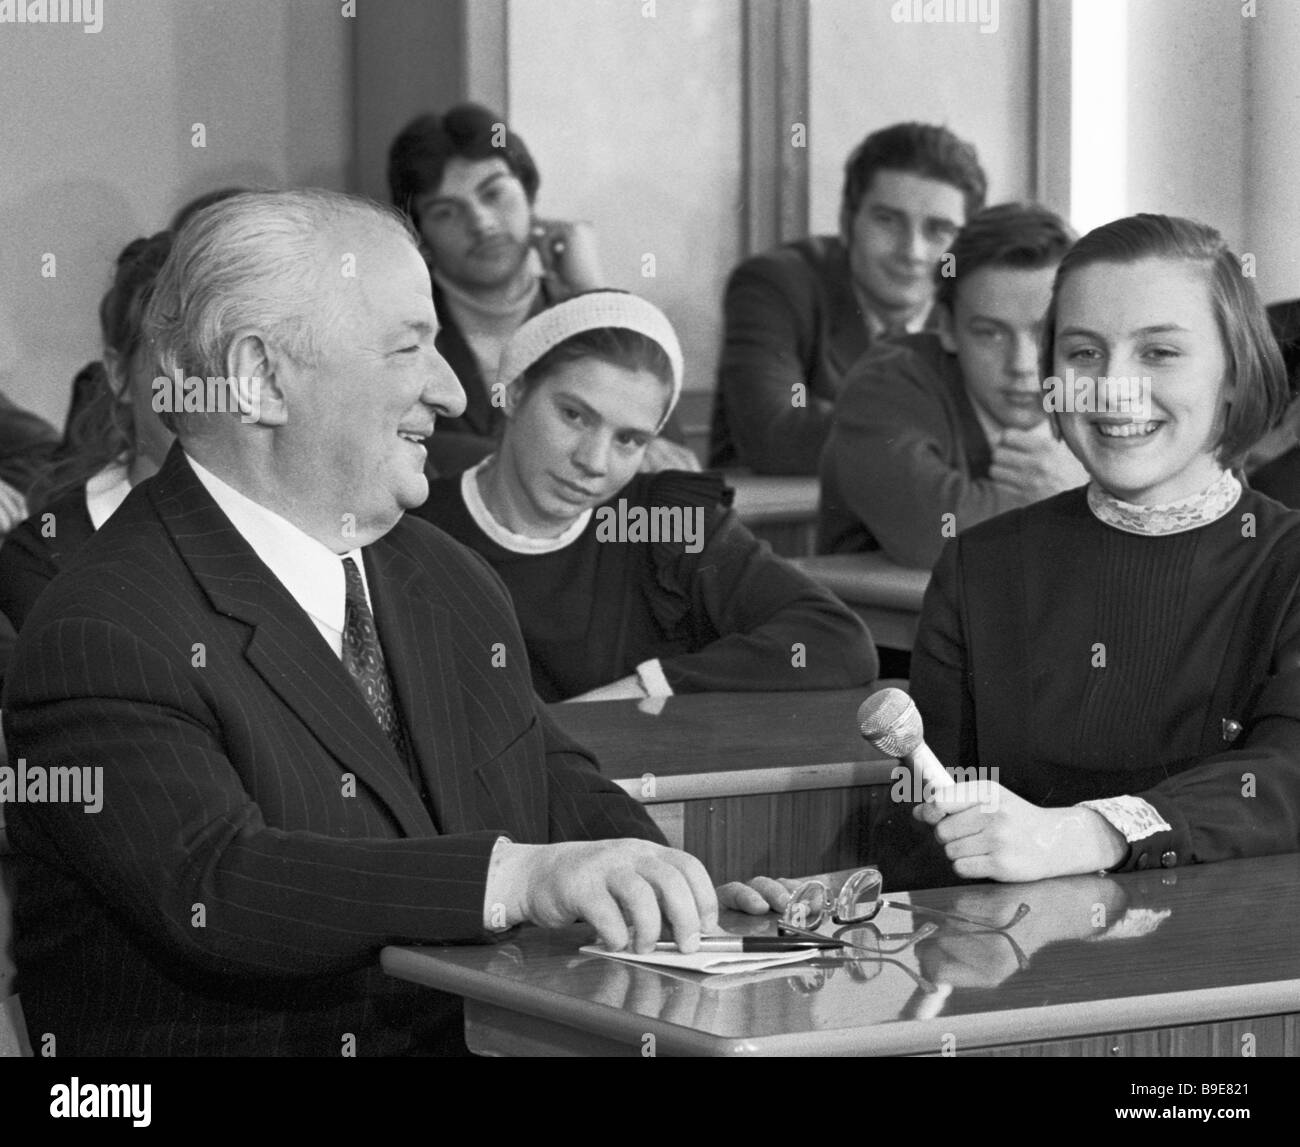 Writer Irakly Andronikov teaches Russian literature course at a Moscow school - Stock Image